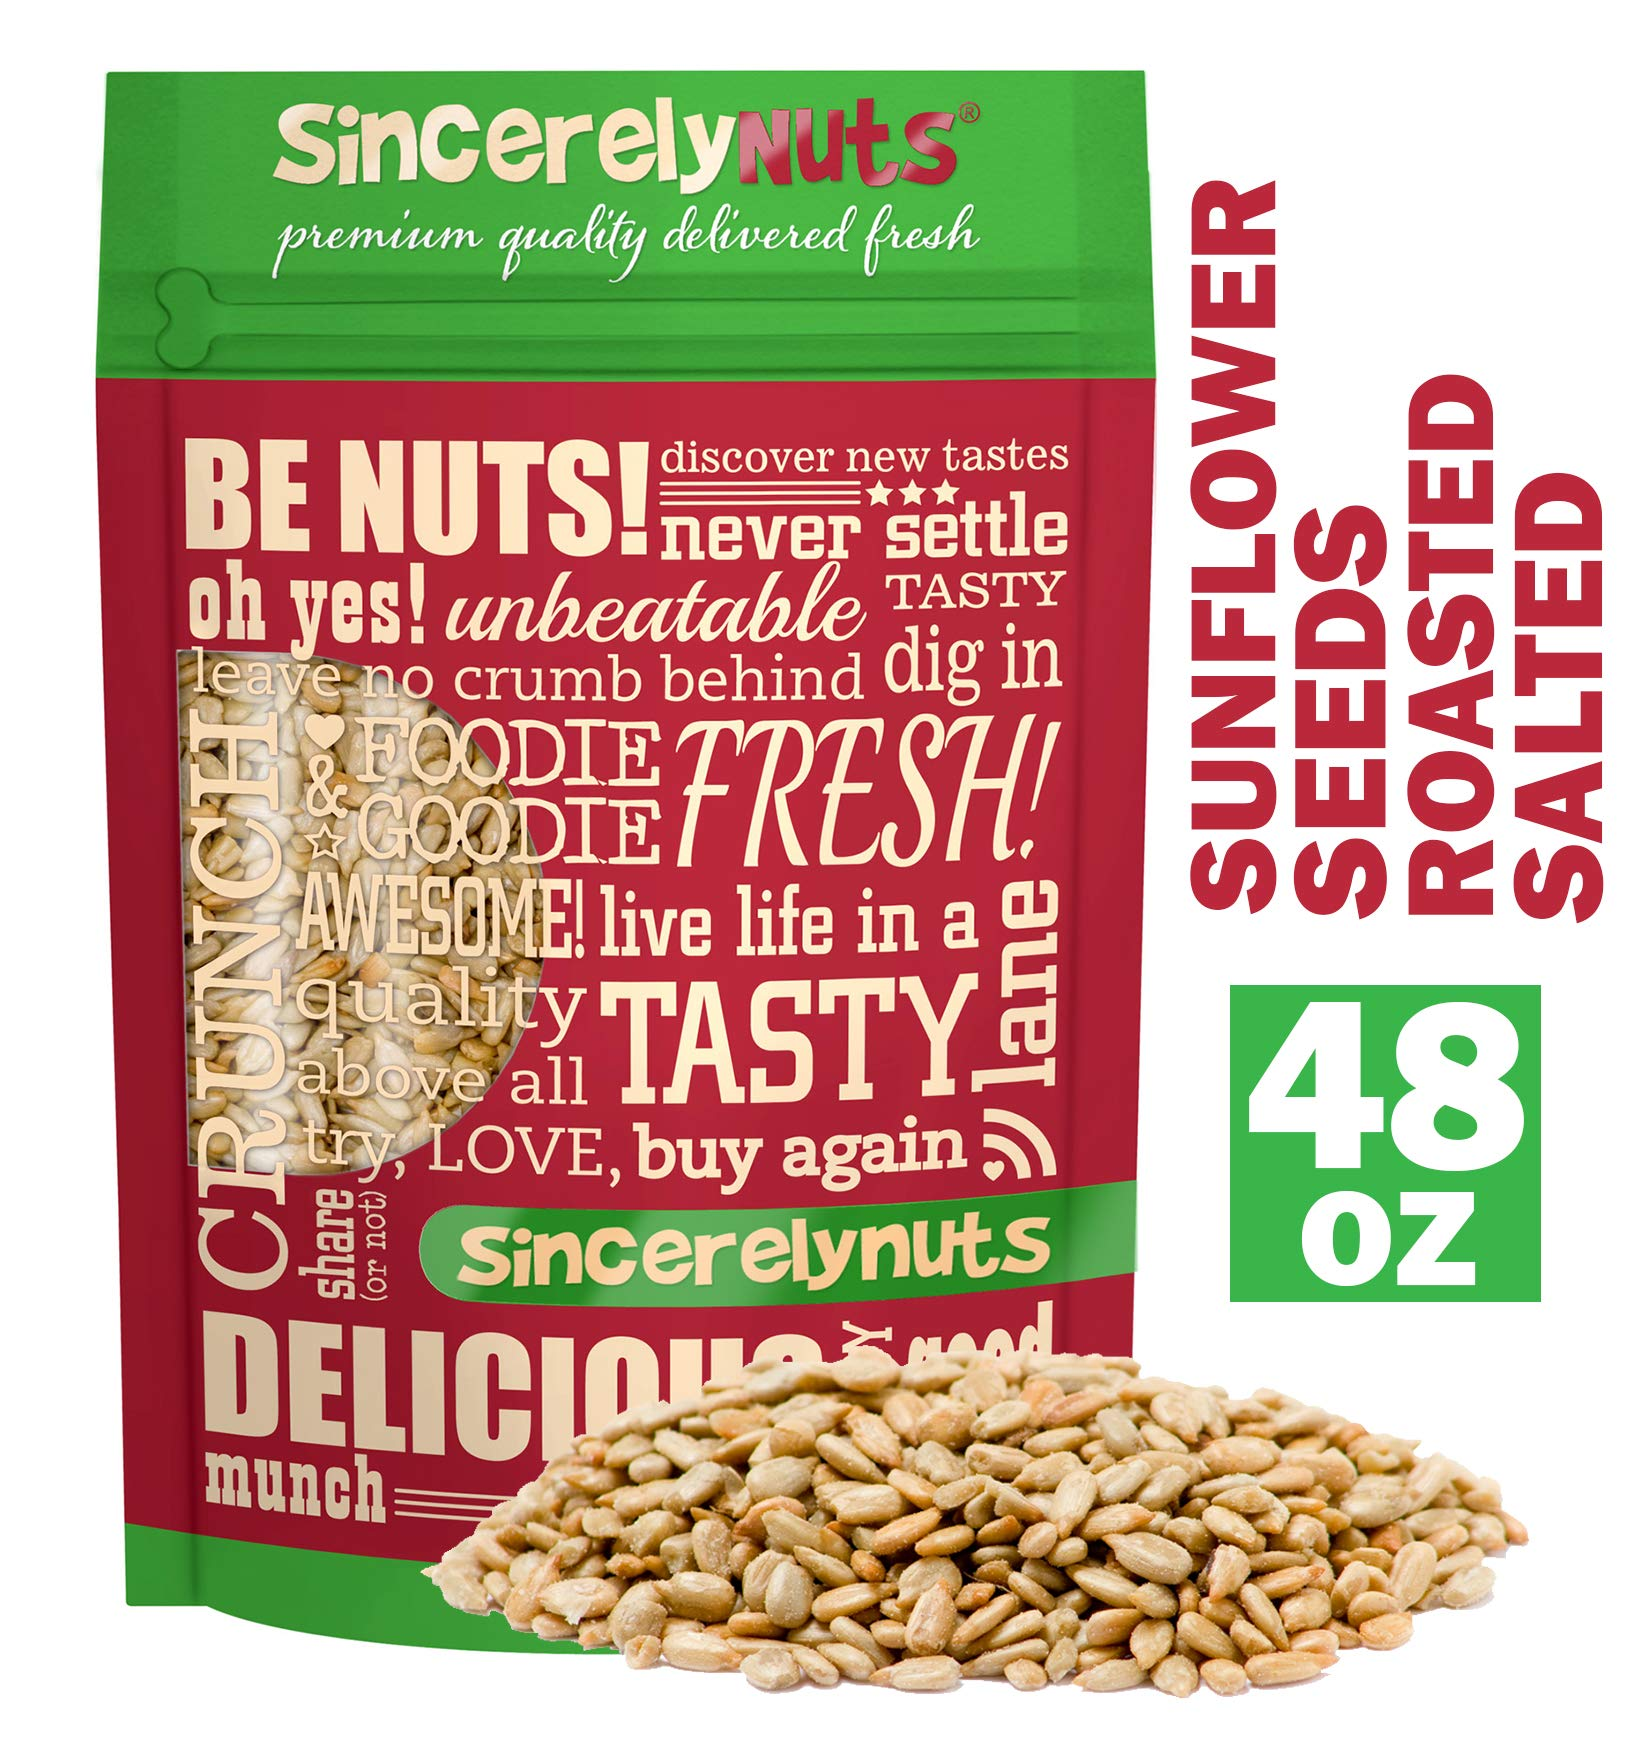 Sincerely Nuts Sunflower Seeds Roasted and Salted (No Shell) (3 LB)- Gluten-Free Food, Vegan, and Kosher Certified Snack-Nutritious and Satisfying-Crunchy and Ready to Eat-Freshness Guaranteed